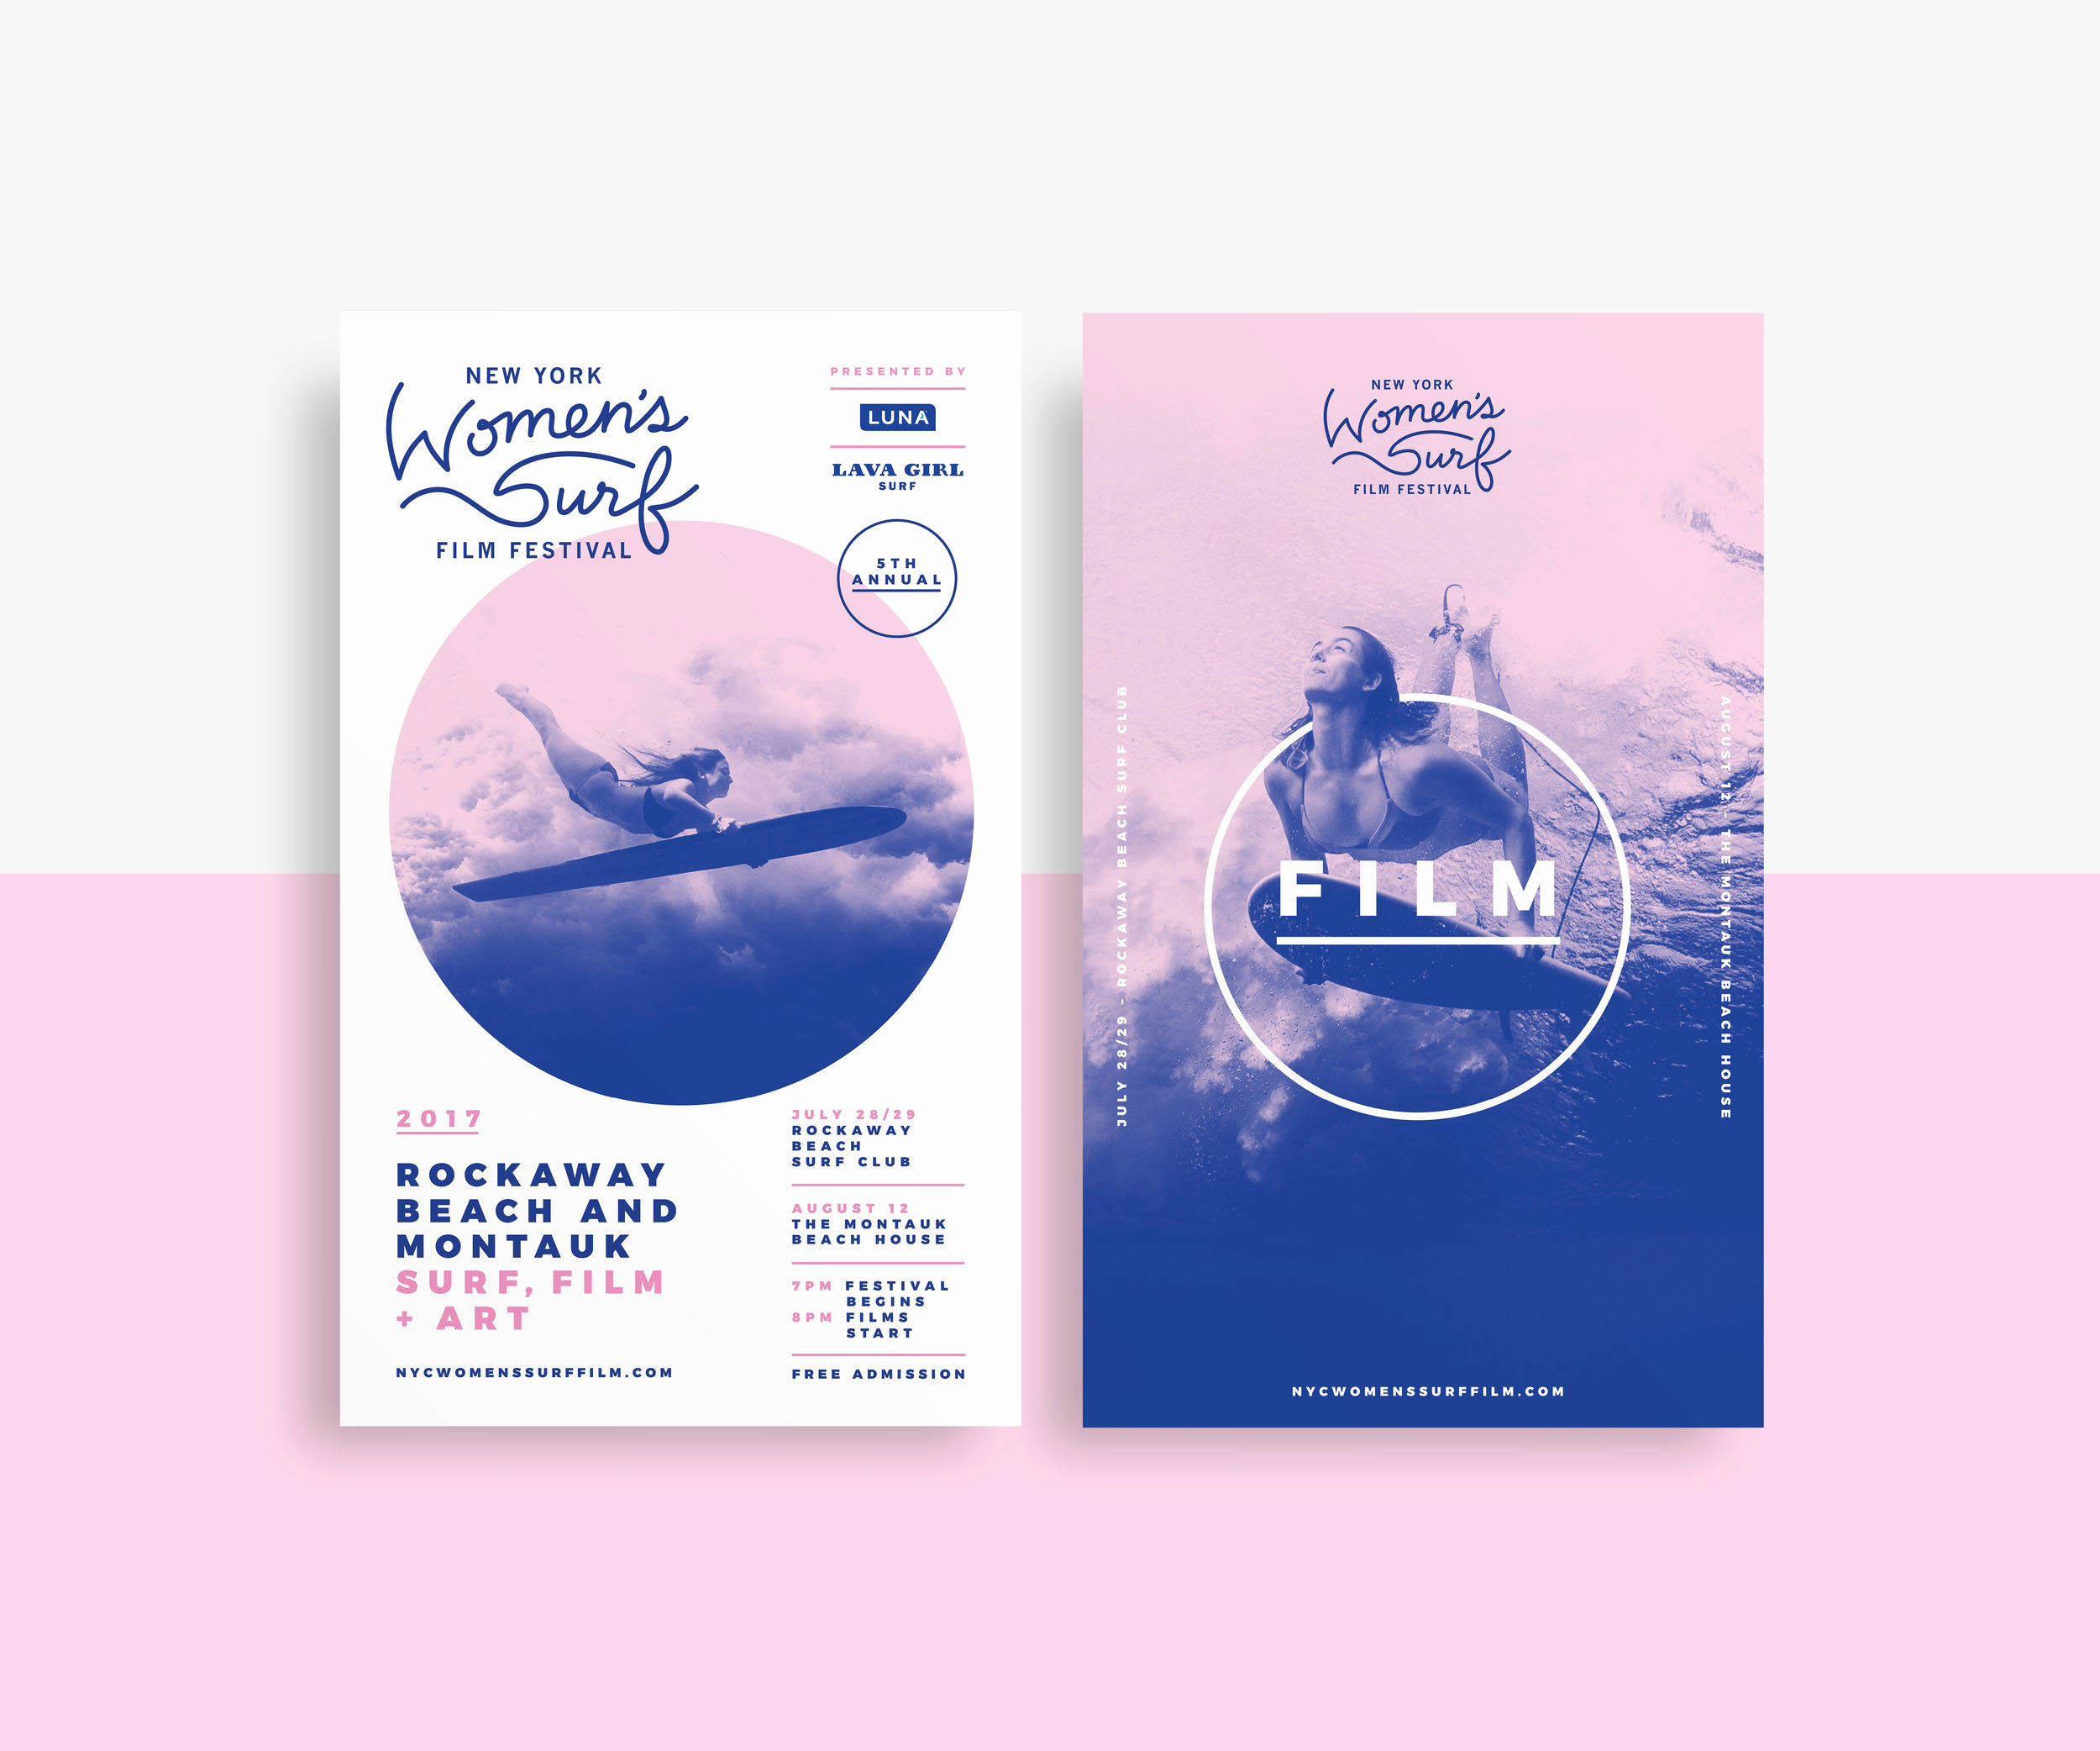 brand identity design nyc fresh brand identity new york women s surf festival of brand identity design nyc - Tendencias Diseño Gráfico 2019